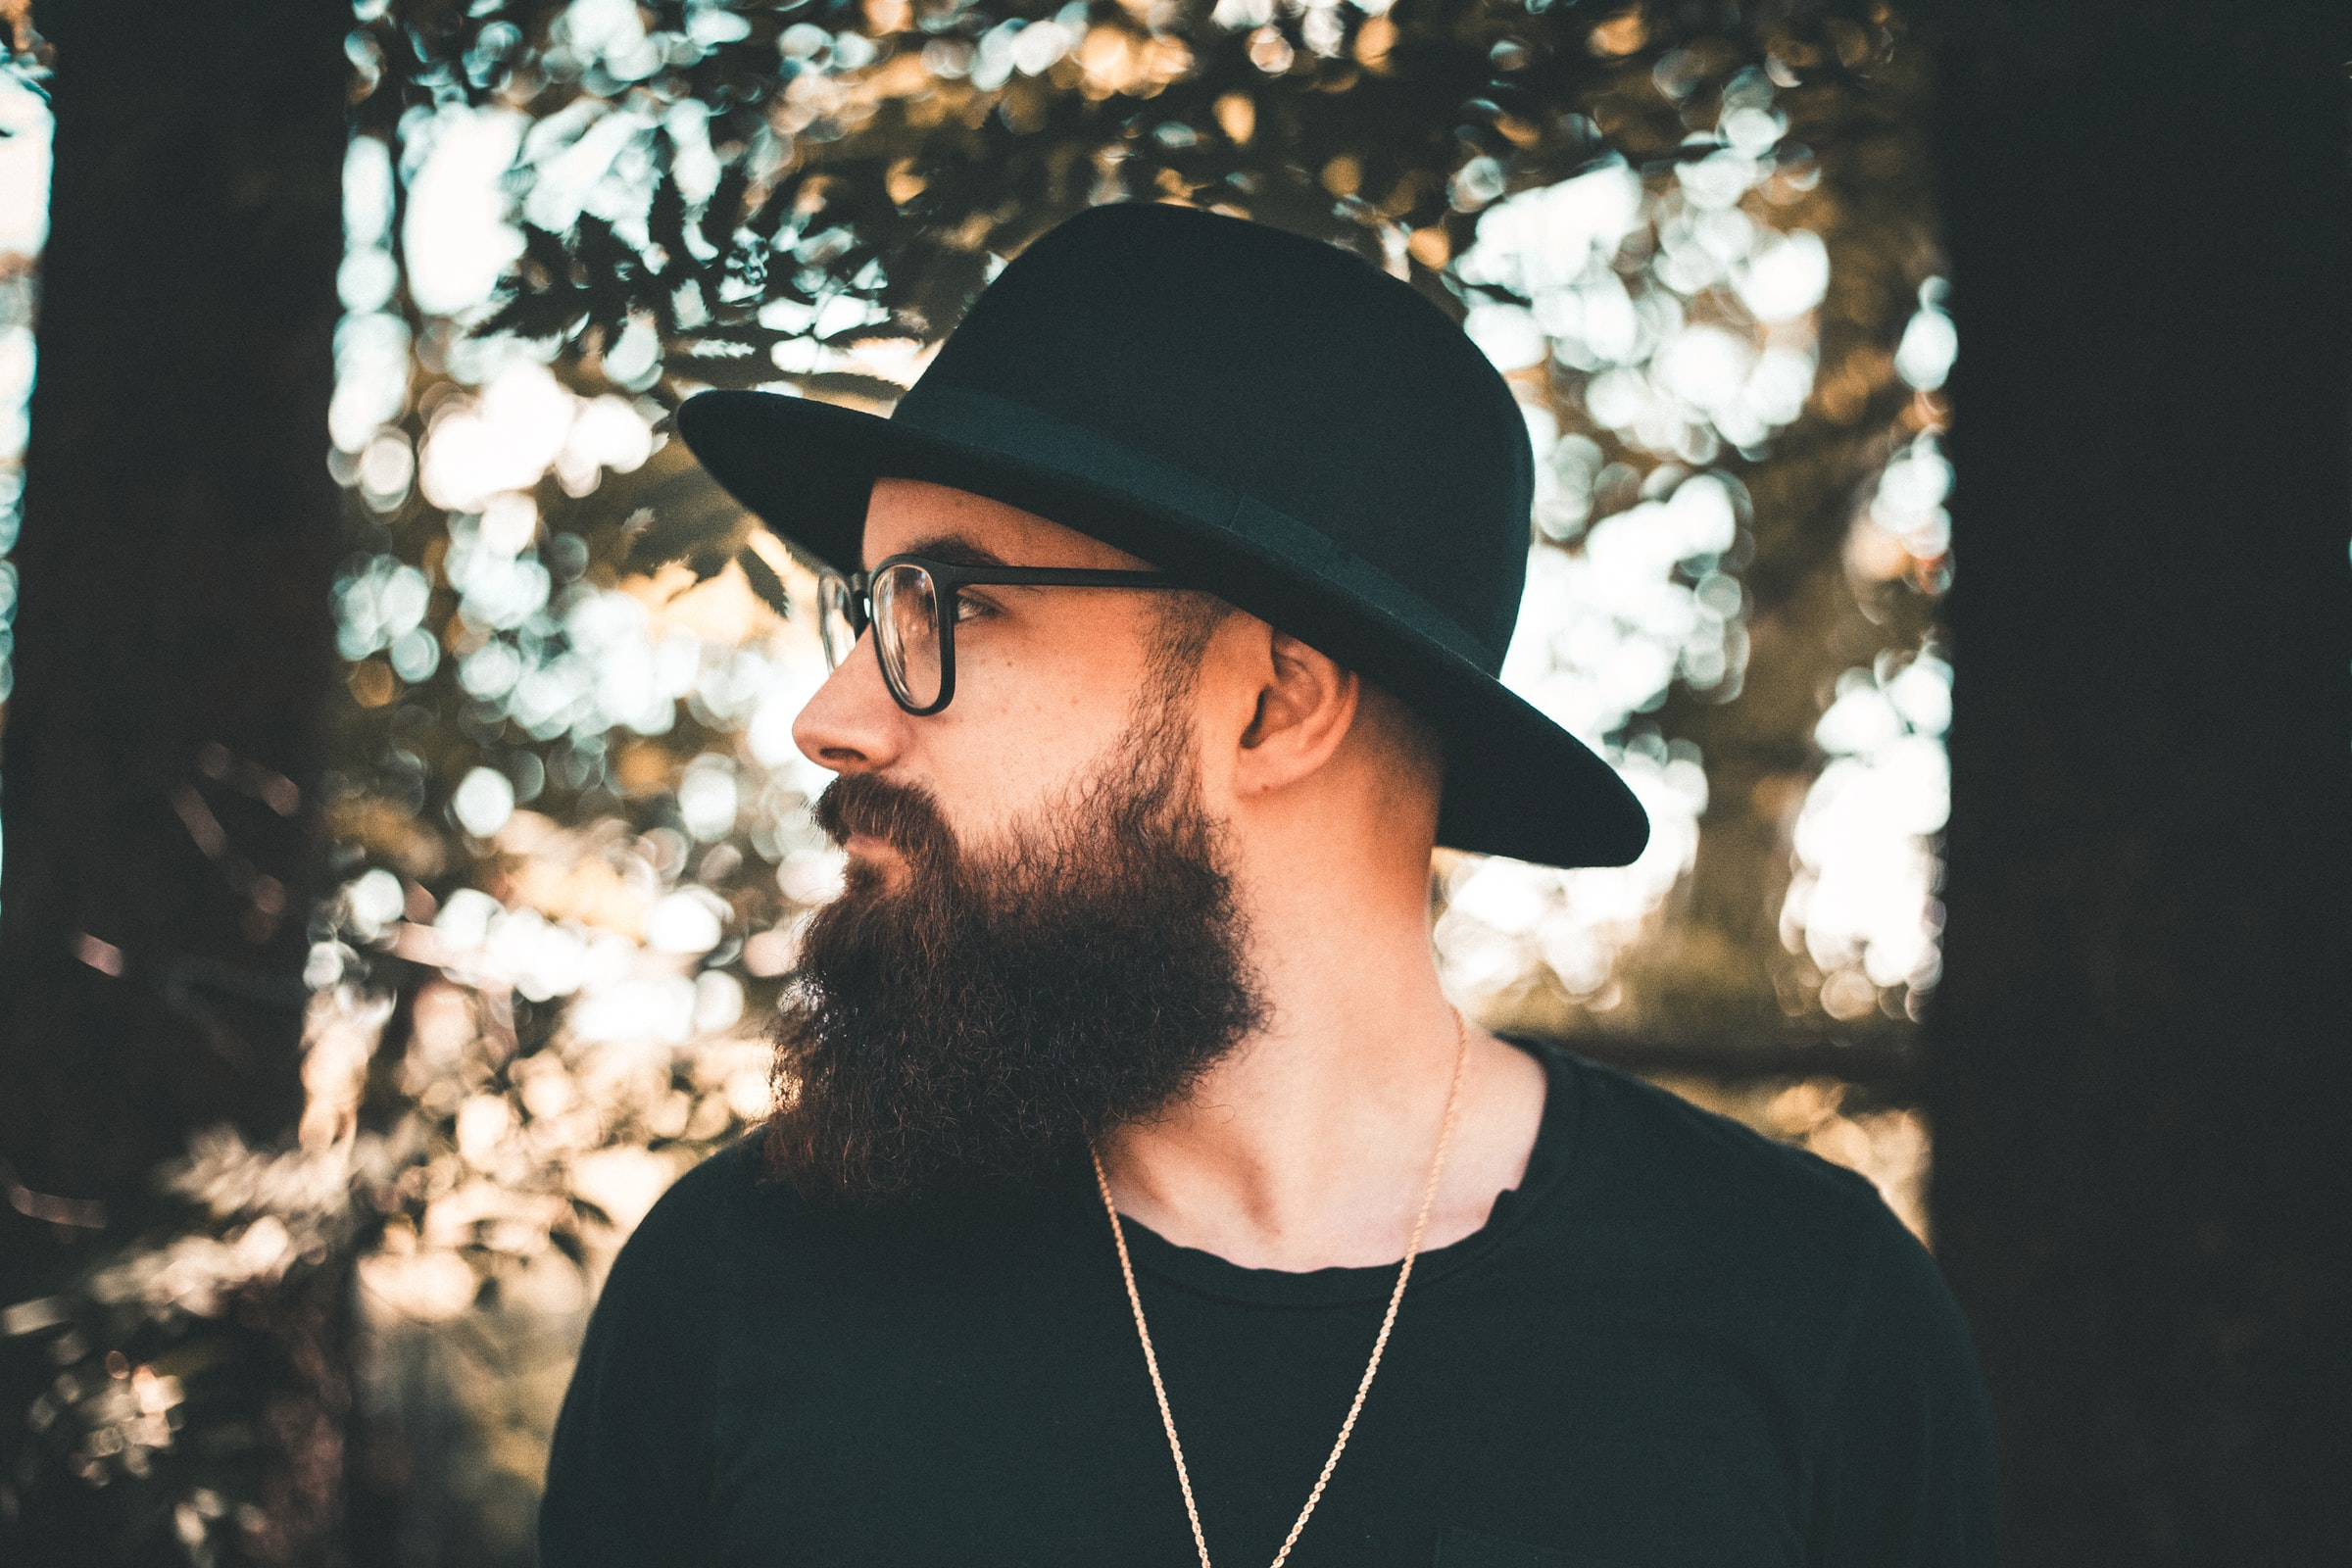 Man wearing black bolwer hat looking to his right with a thick beard wearing a black t shirt and glasses in the forest